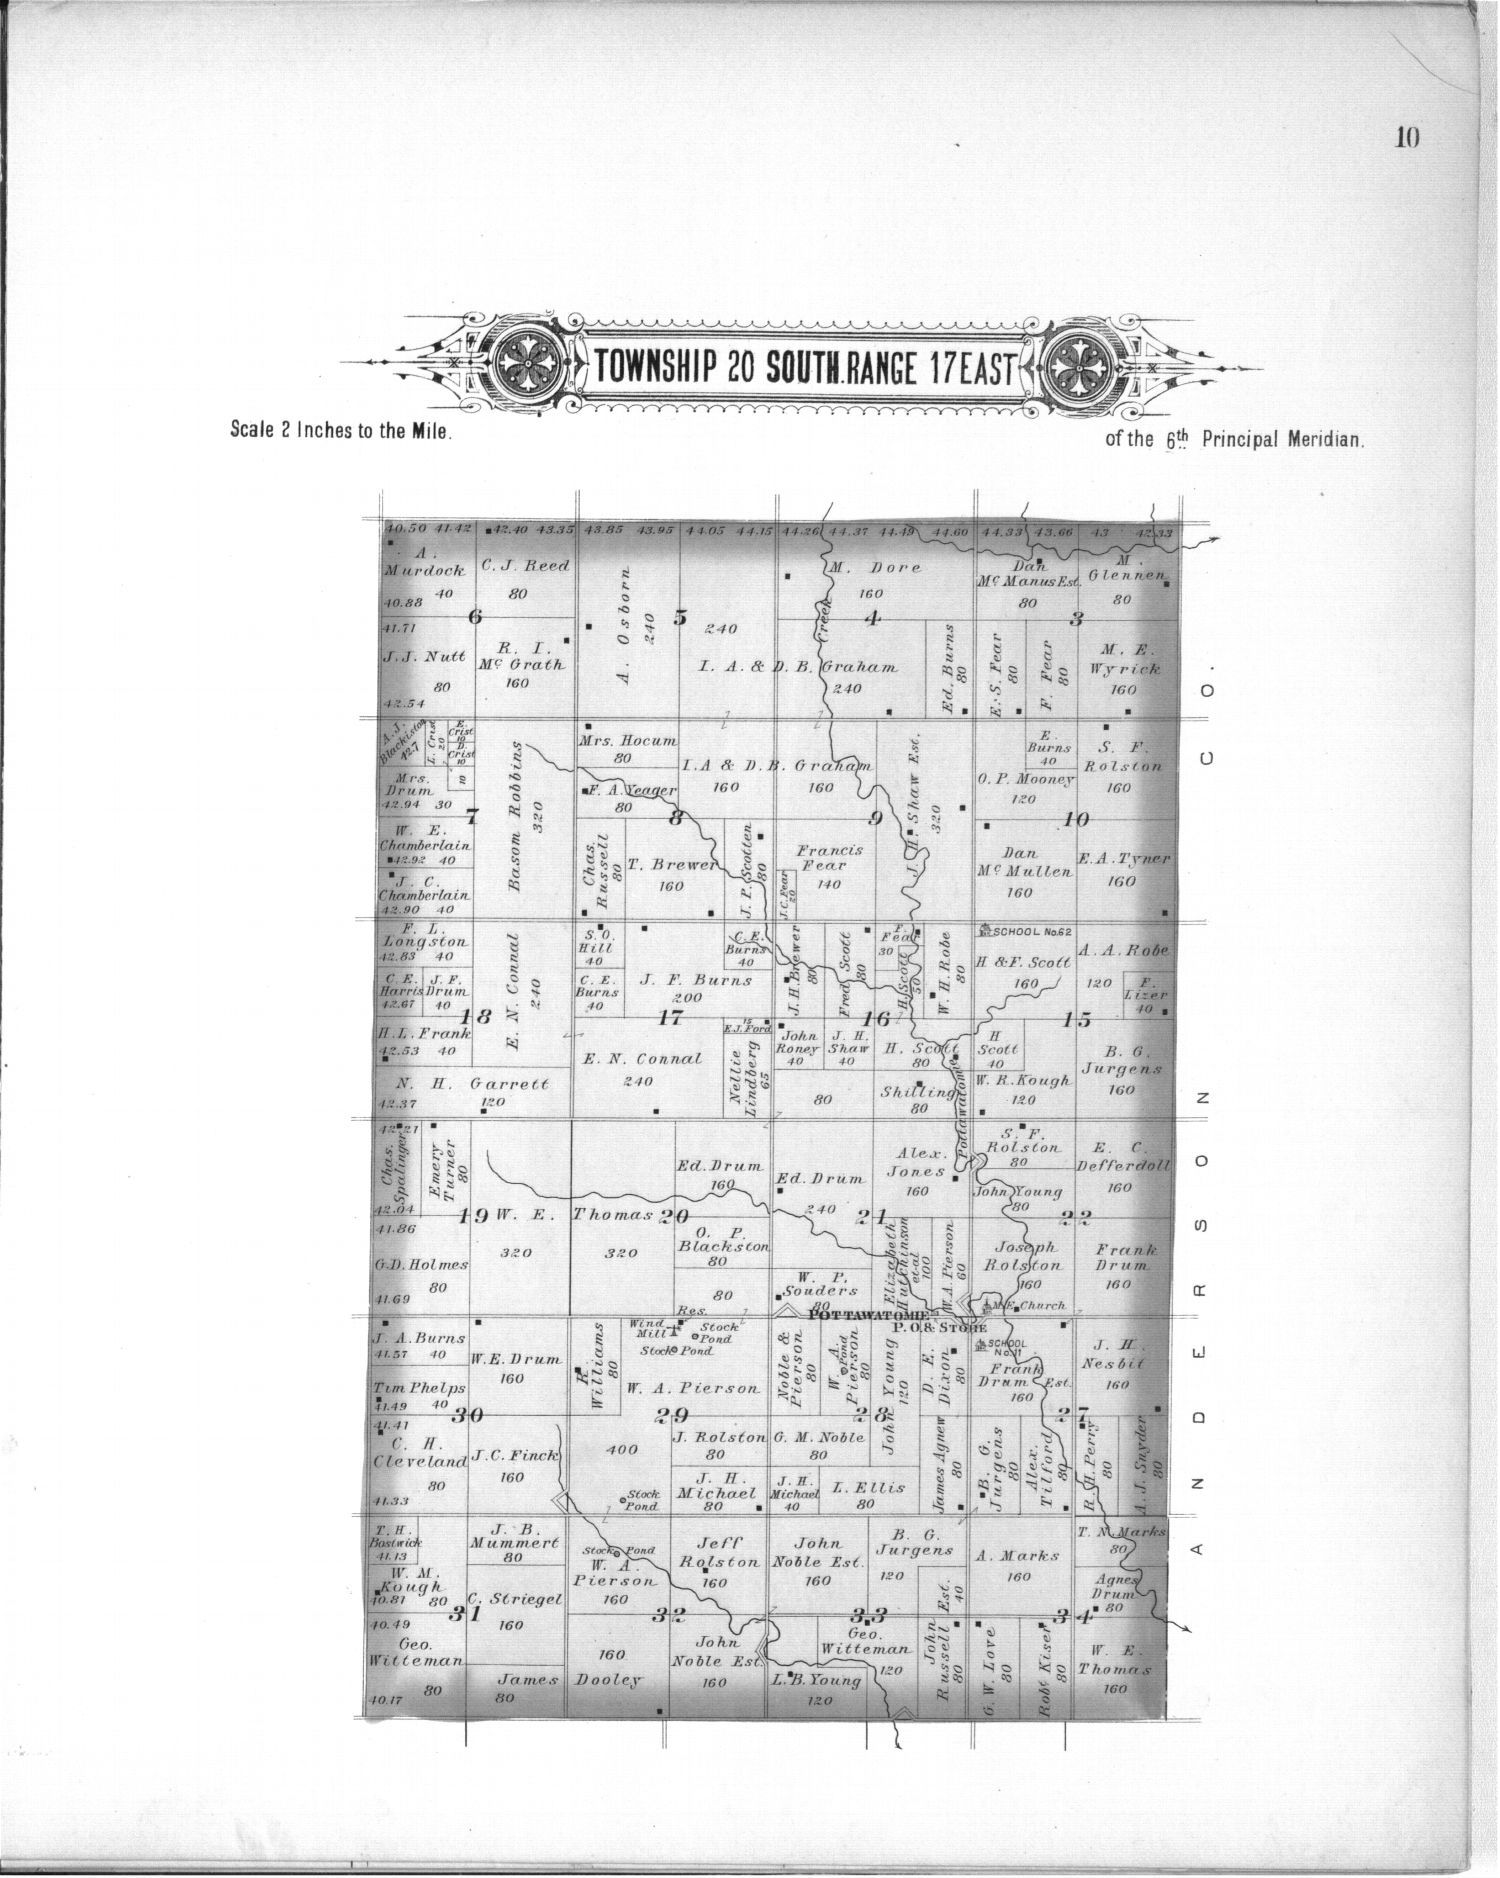 Plat book, Coffey County, Kansas - 10